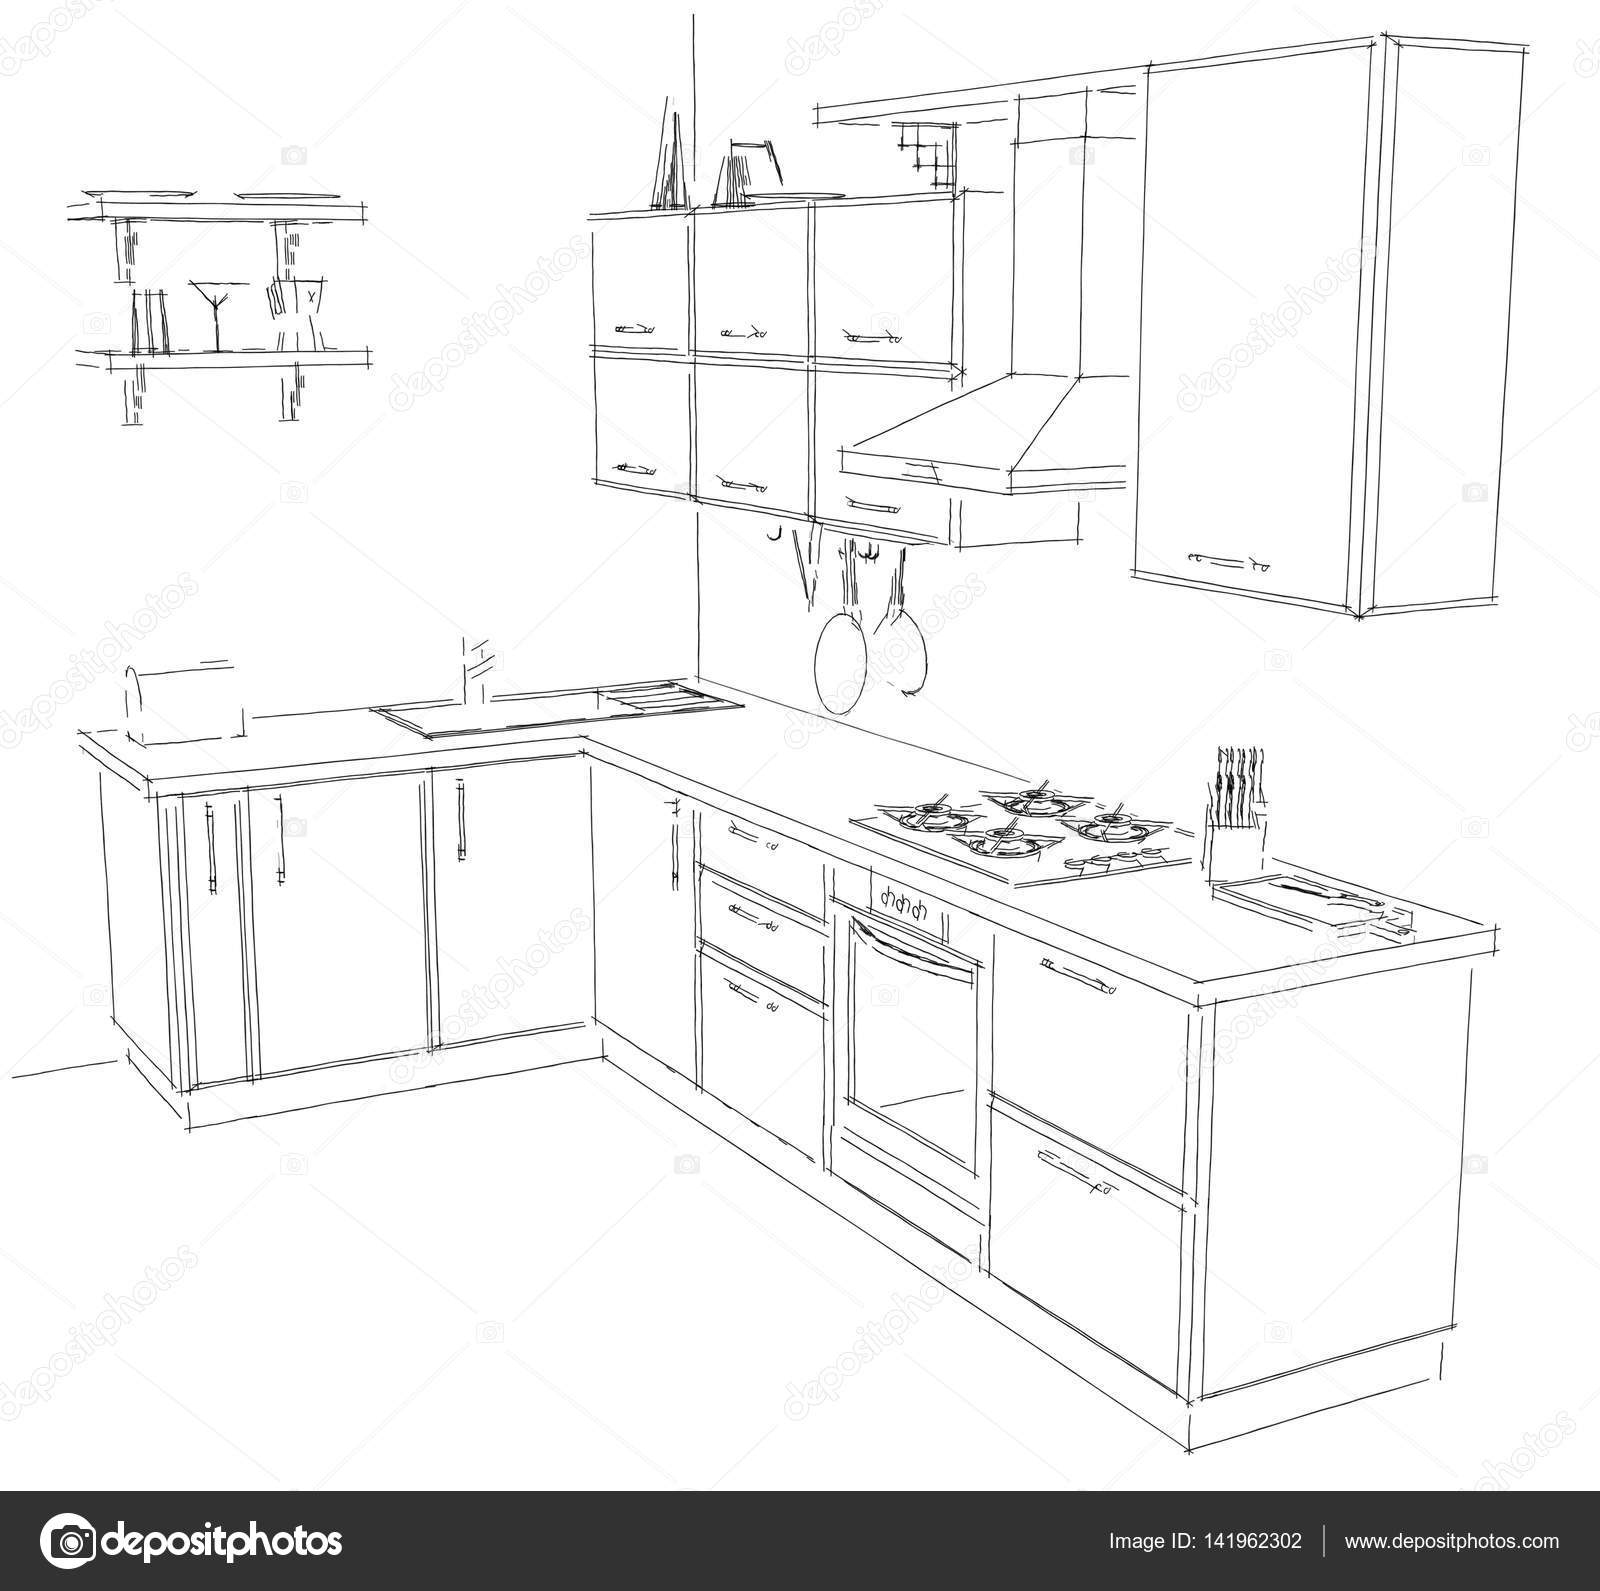 Drawings 3d black and white modern corner kitchen contour